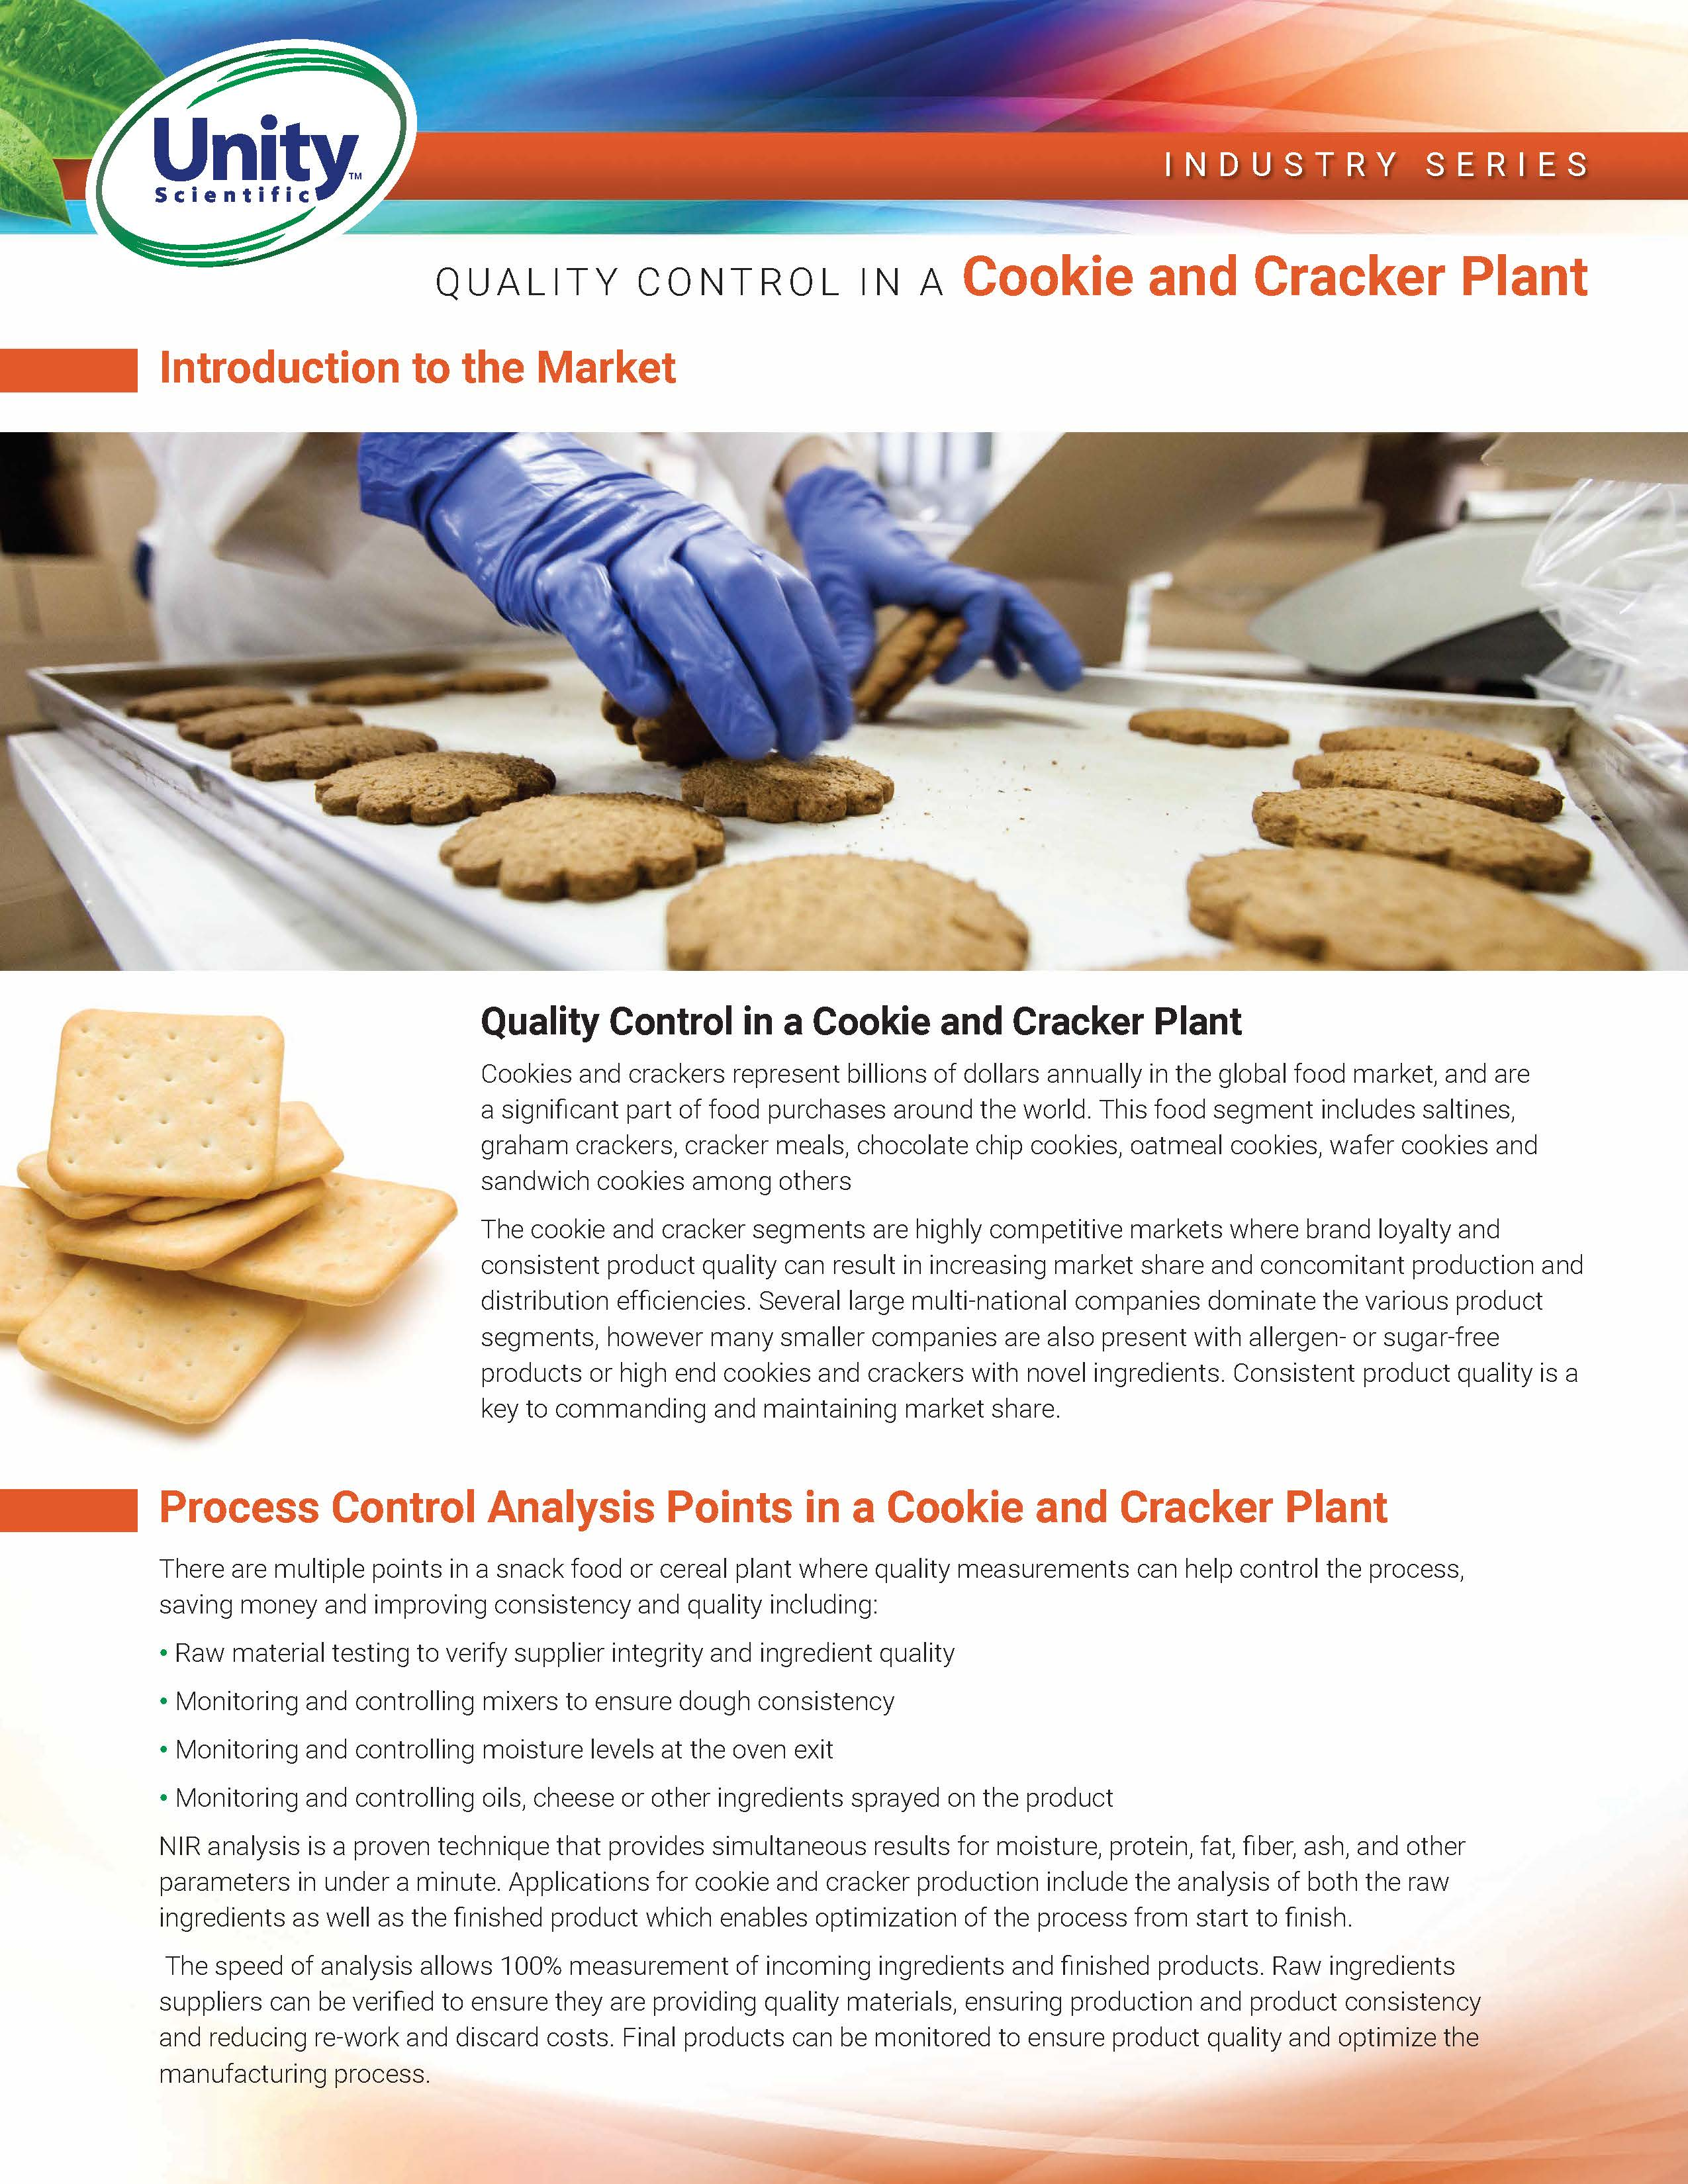 Industry Series - Quality Control In A Cookie and Cracker Plant